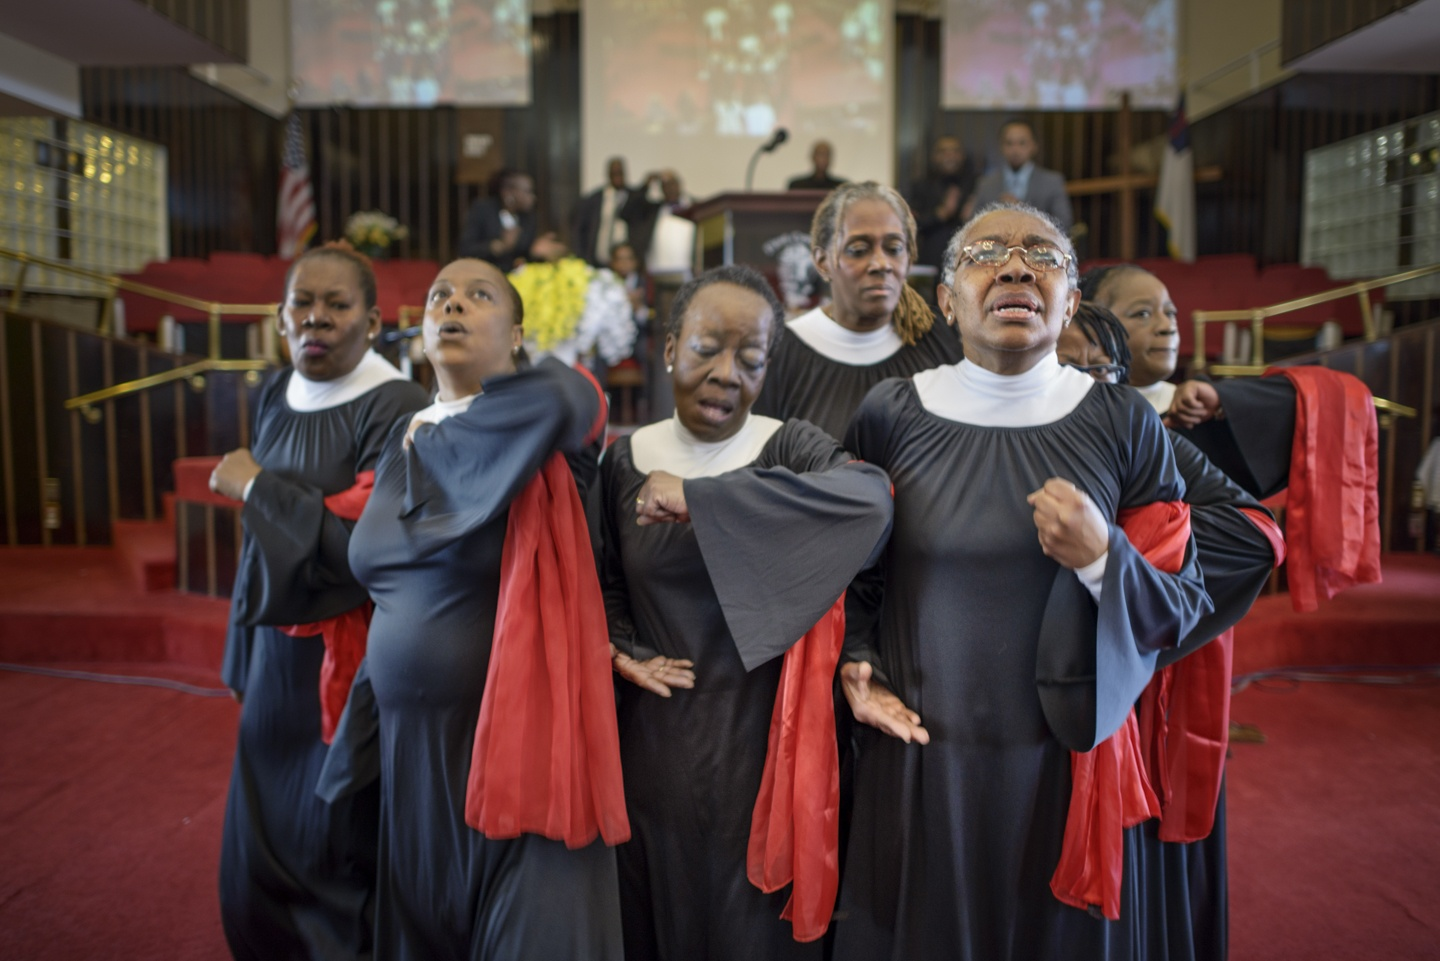 Church members perform at the First Baptist Church in Stapleton, nearby Tompkinsville, Staten Island, NY. Photo courtesy of Gareth Smit, Future Culture Photo Urbanism Fellow, Design Trust for Public Space